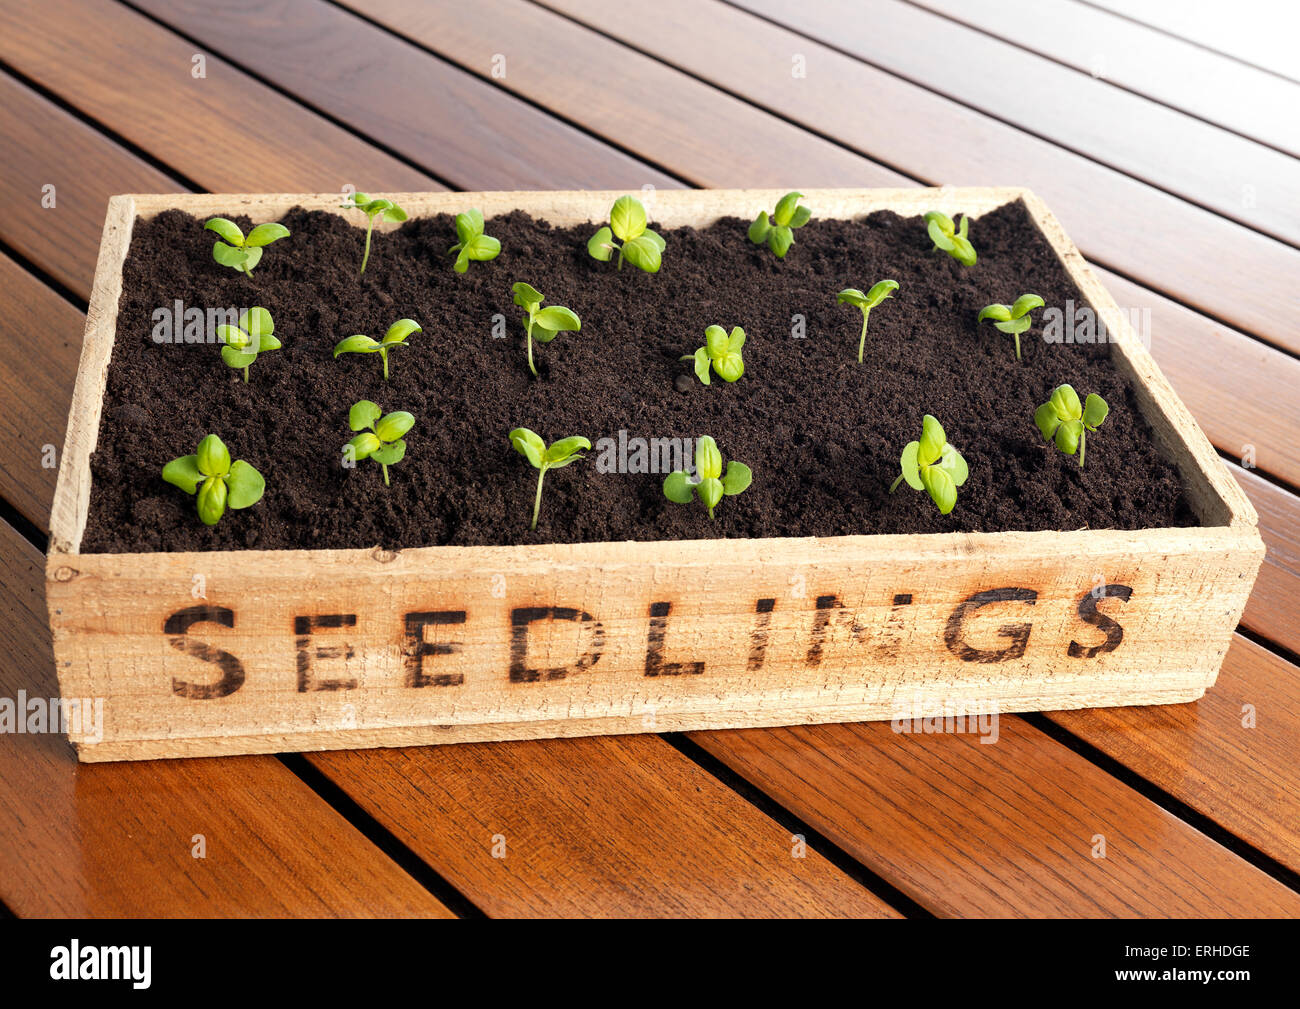 Seedling box with new growth Stock Photo